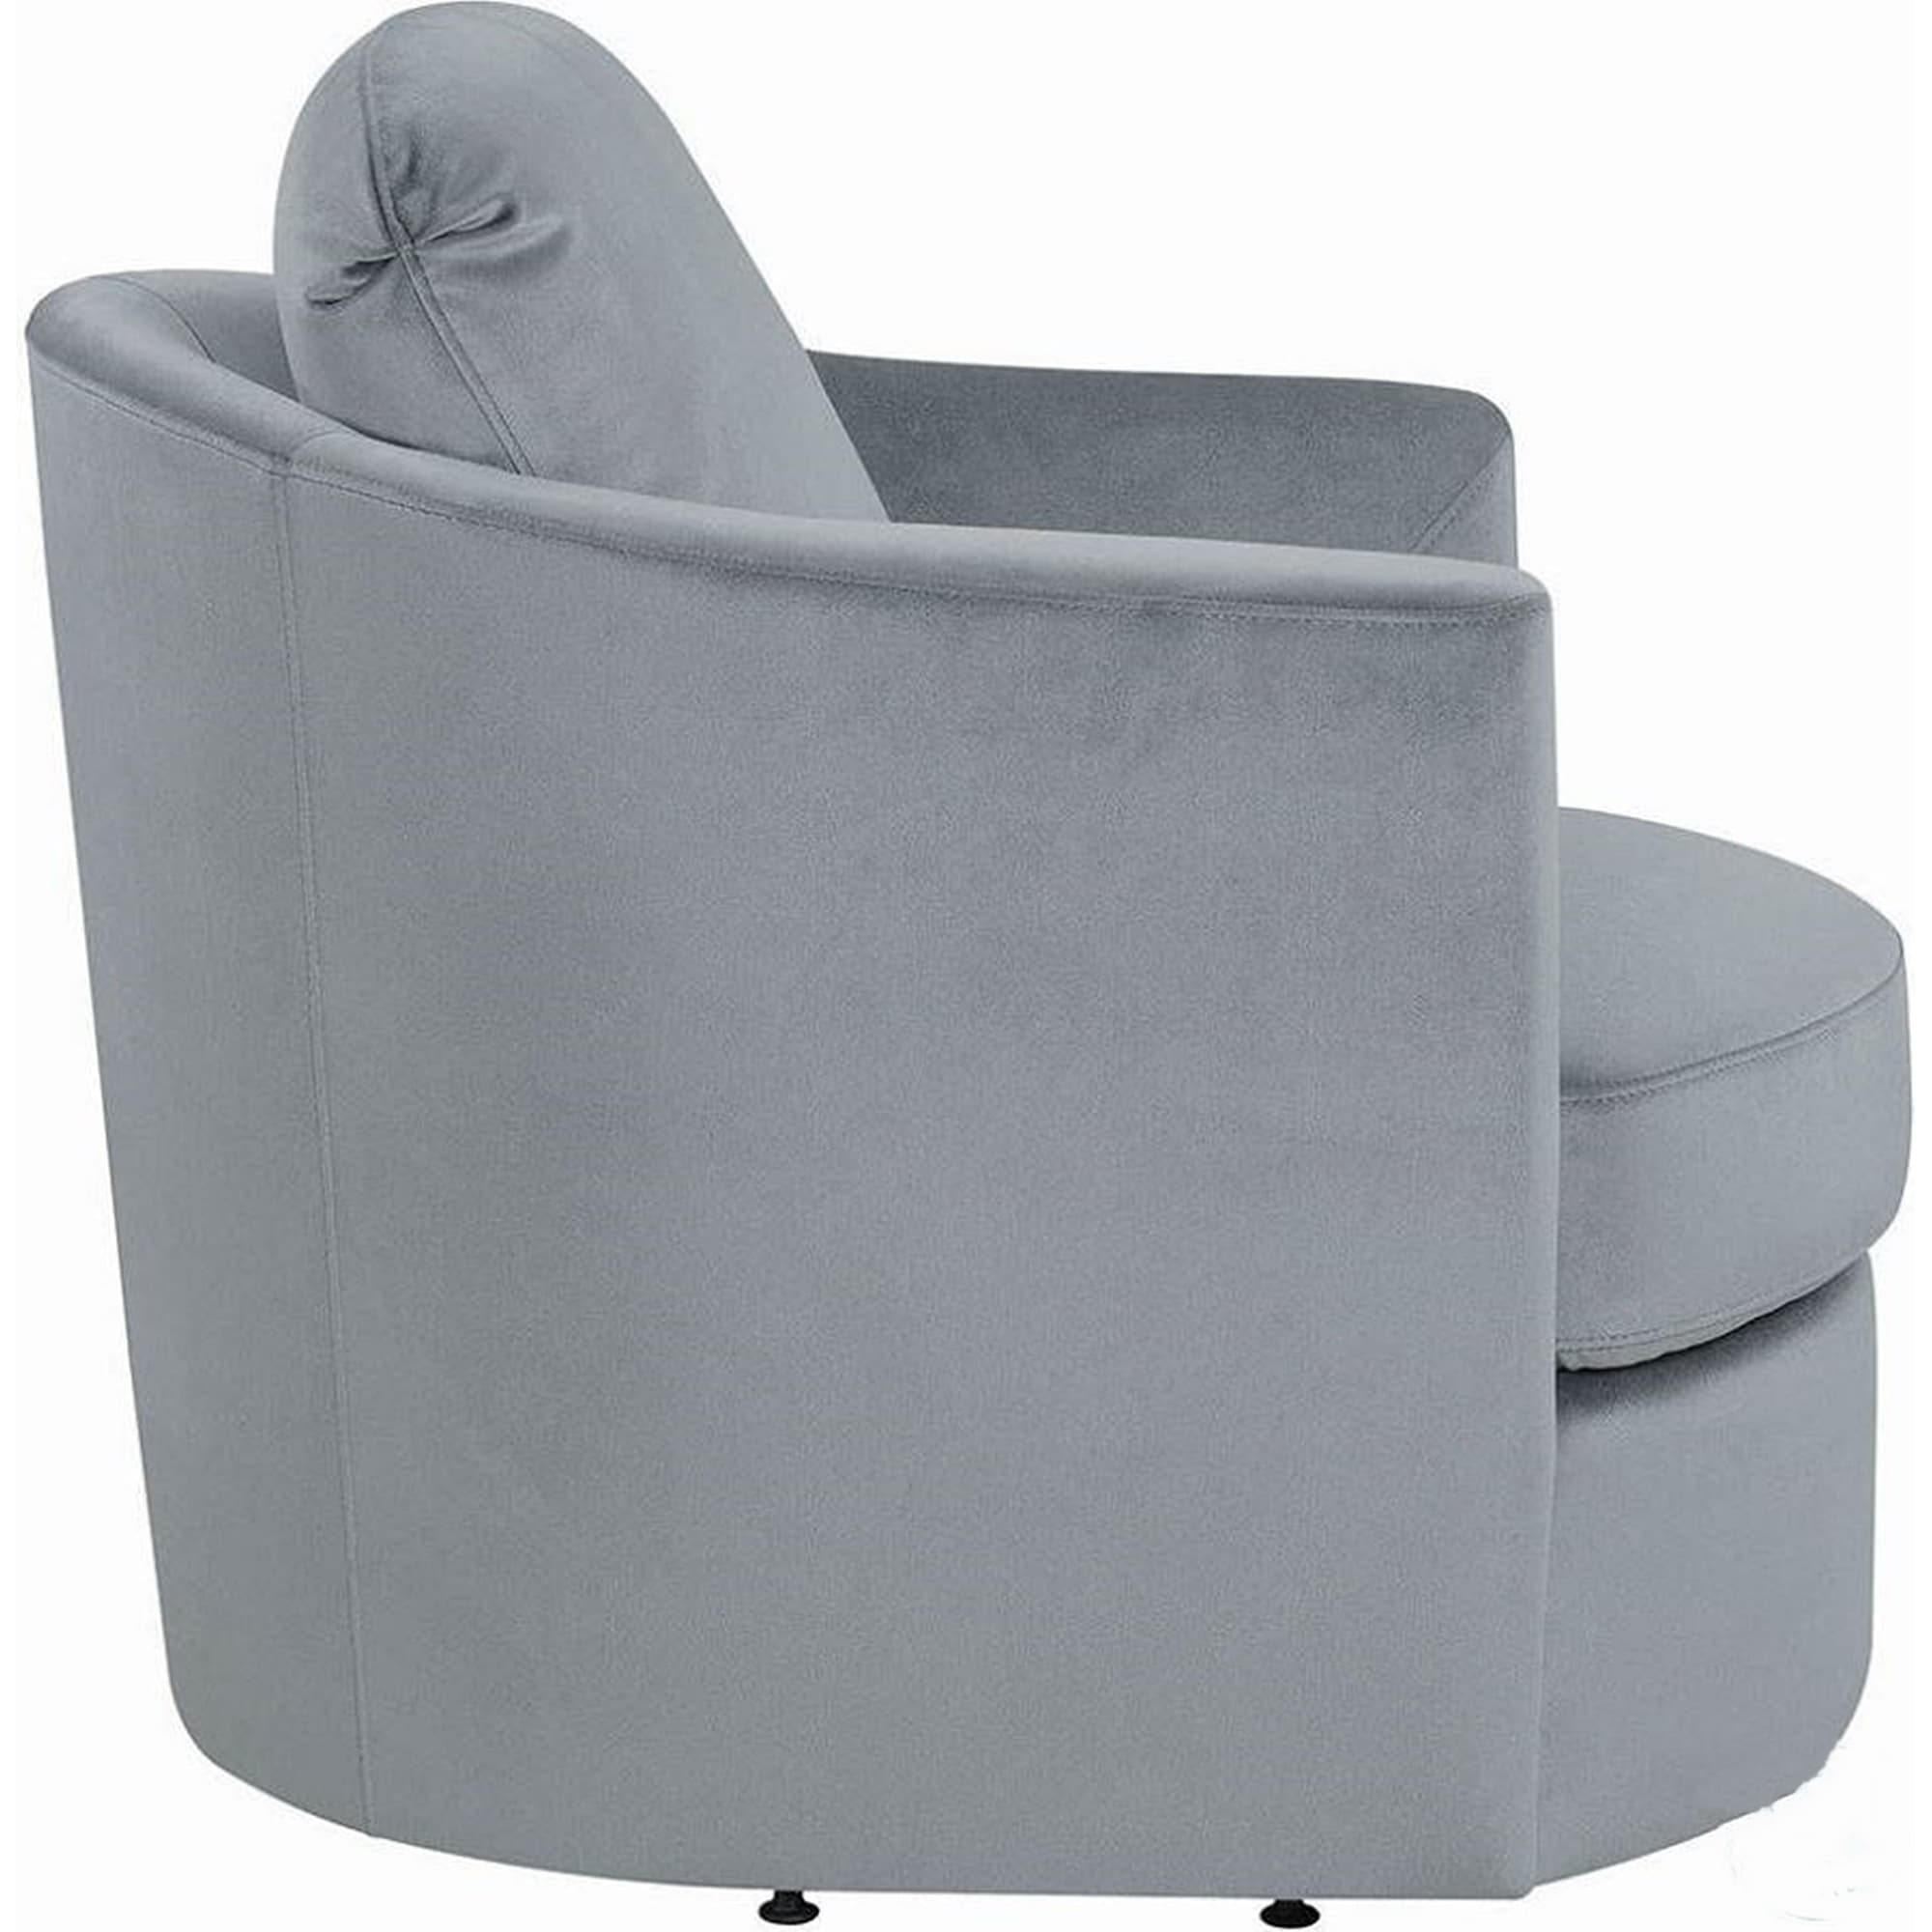 Ogden Grey Velvet Upholstered Round Swivel Accent Chair